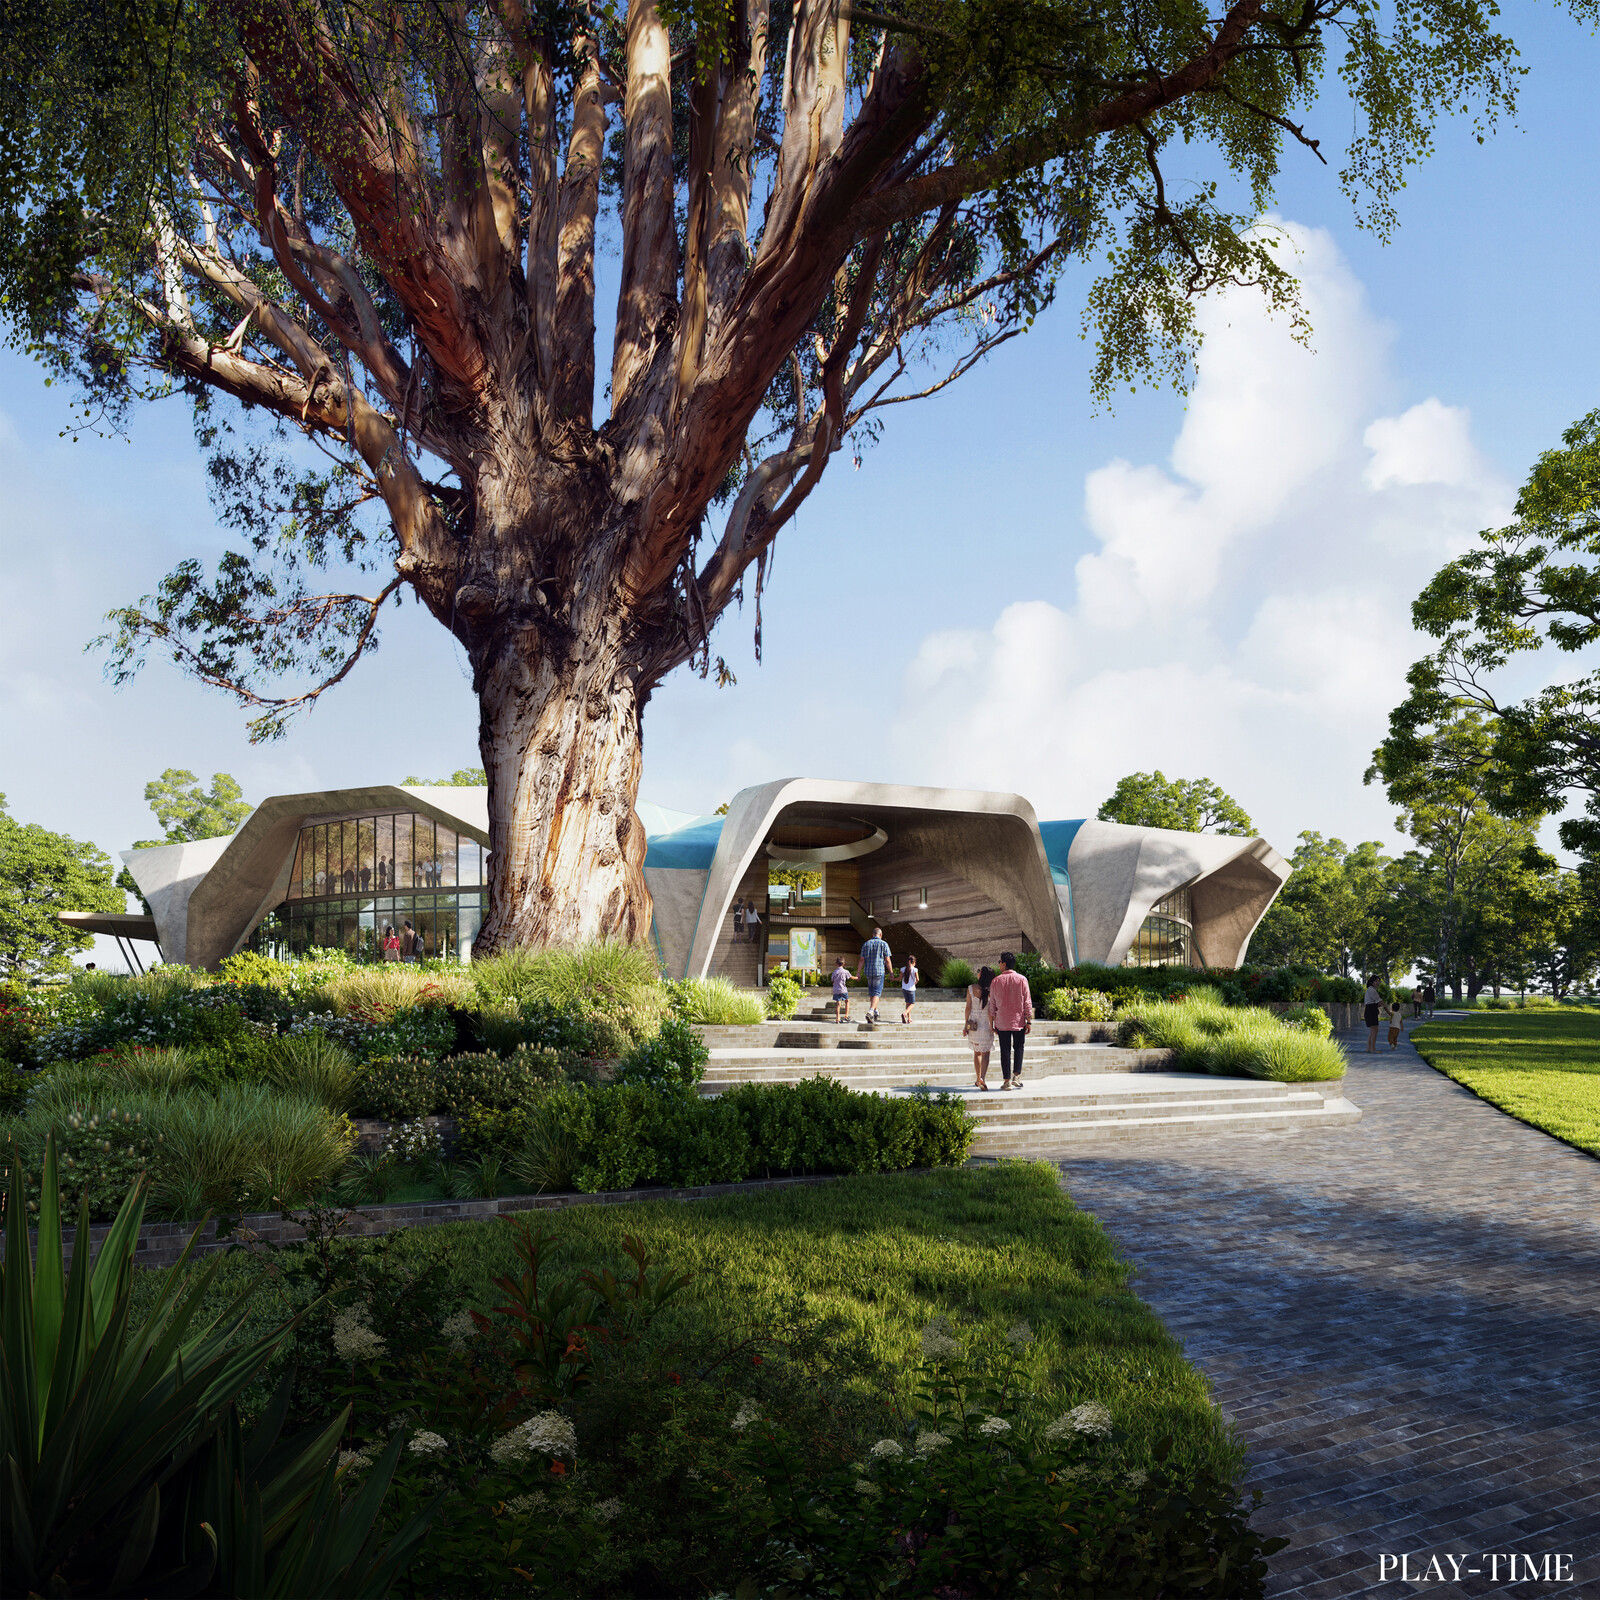 Kurnell Visitor Center in Kamay Botany Bay National Park designed by Crone Architects. Images by Play-time.